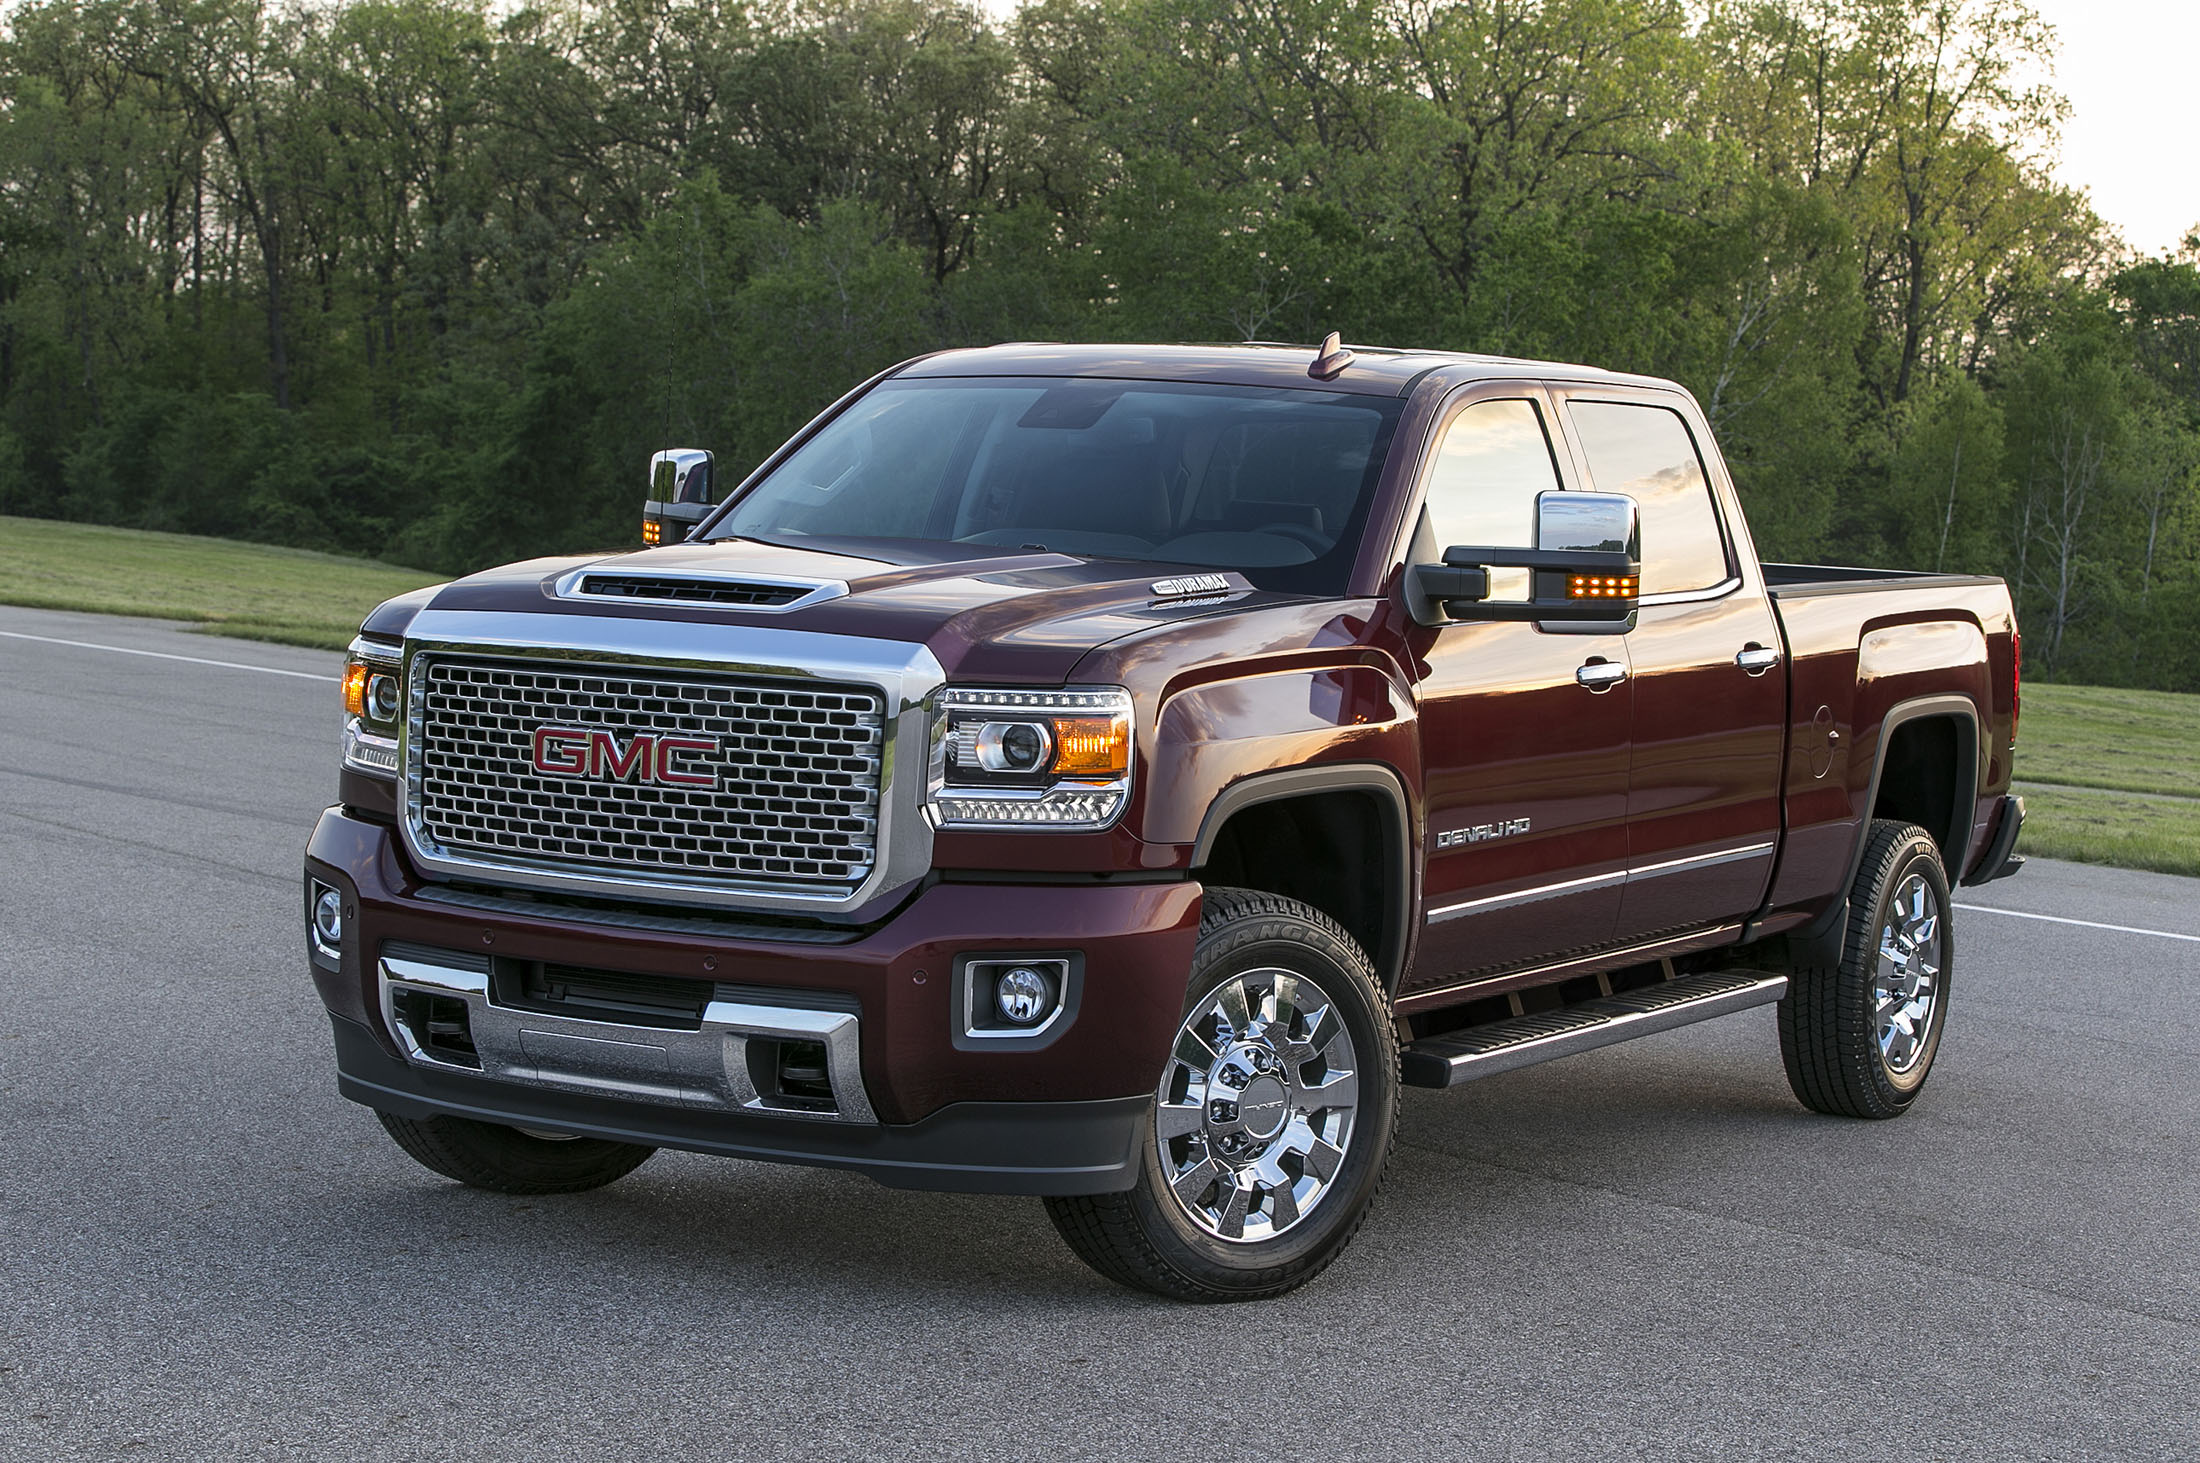 2017 gmc sierra denali 2500hd_100555190_h gm adds b20 biodiesel capability to chevy, gmc diesel trucks, cars  at money-cpm.com